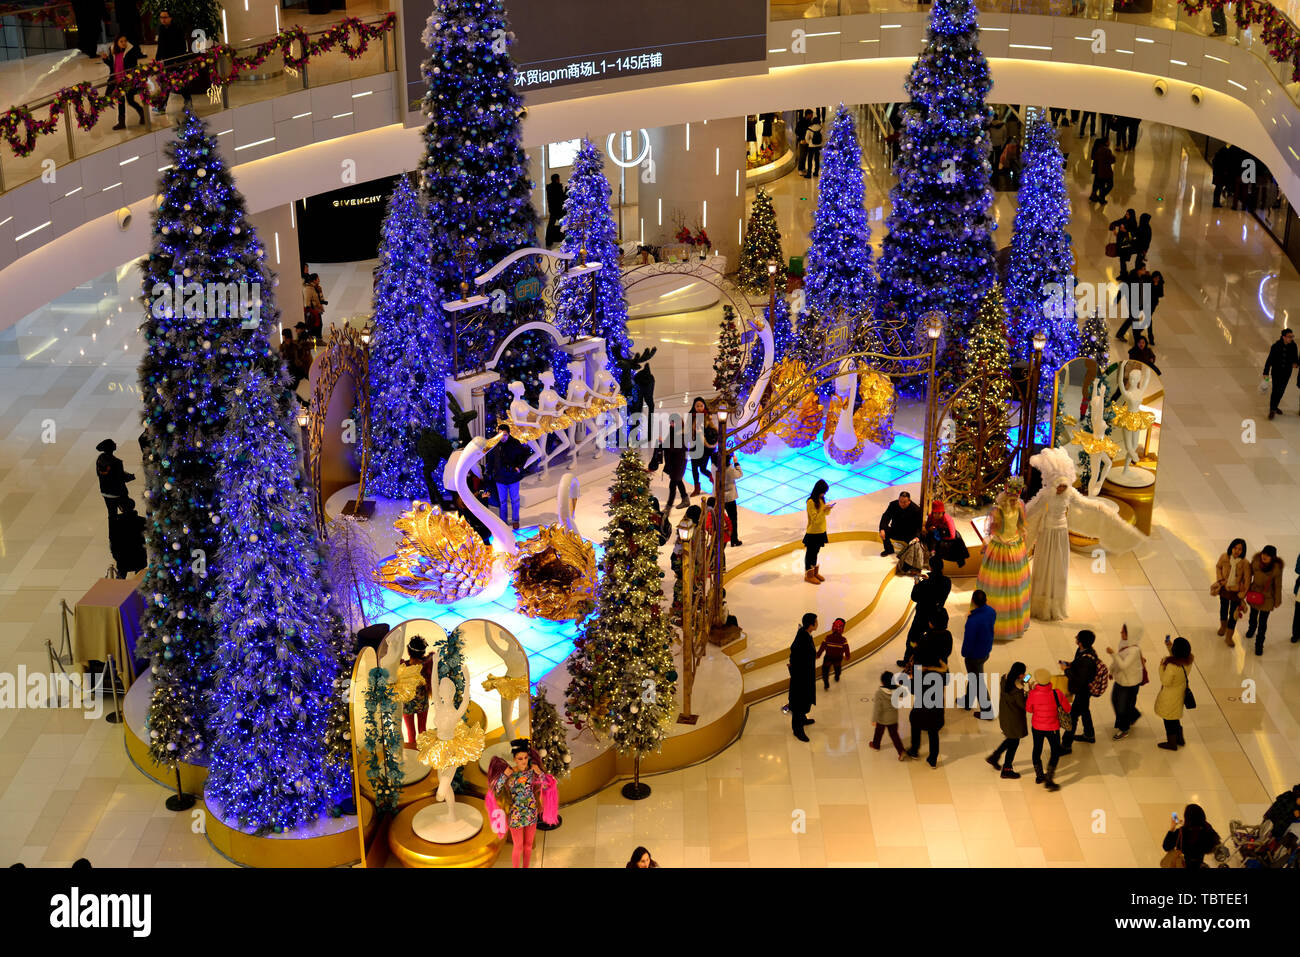 Christmas decorations in the central hall of the large mall. Stock Photo